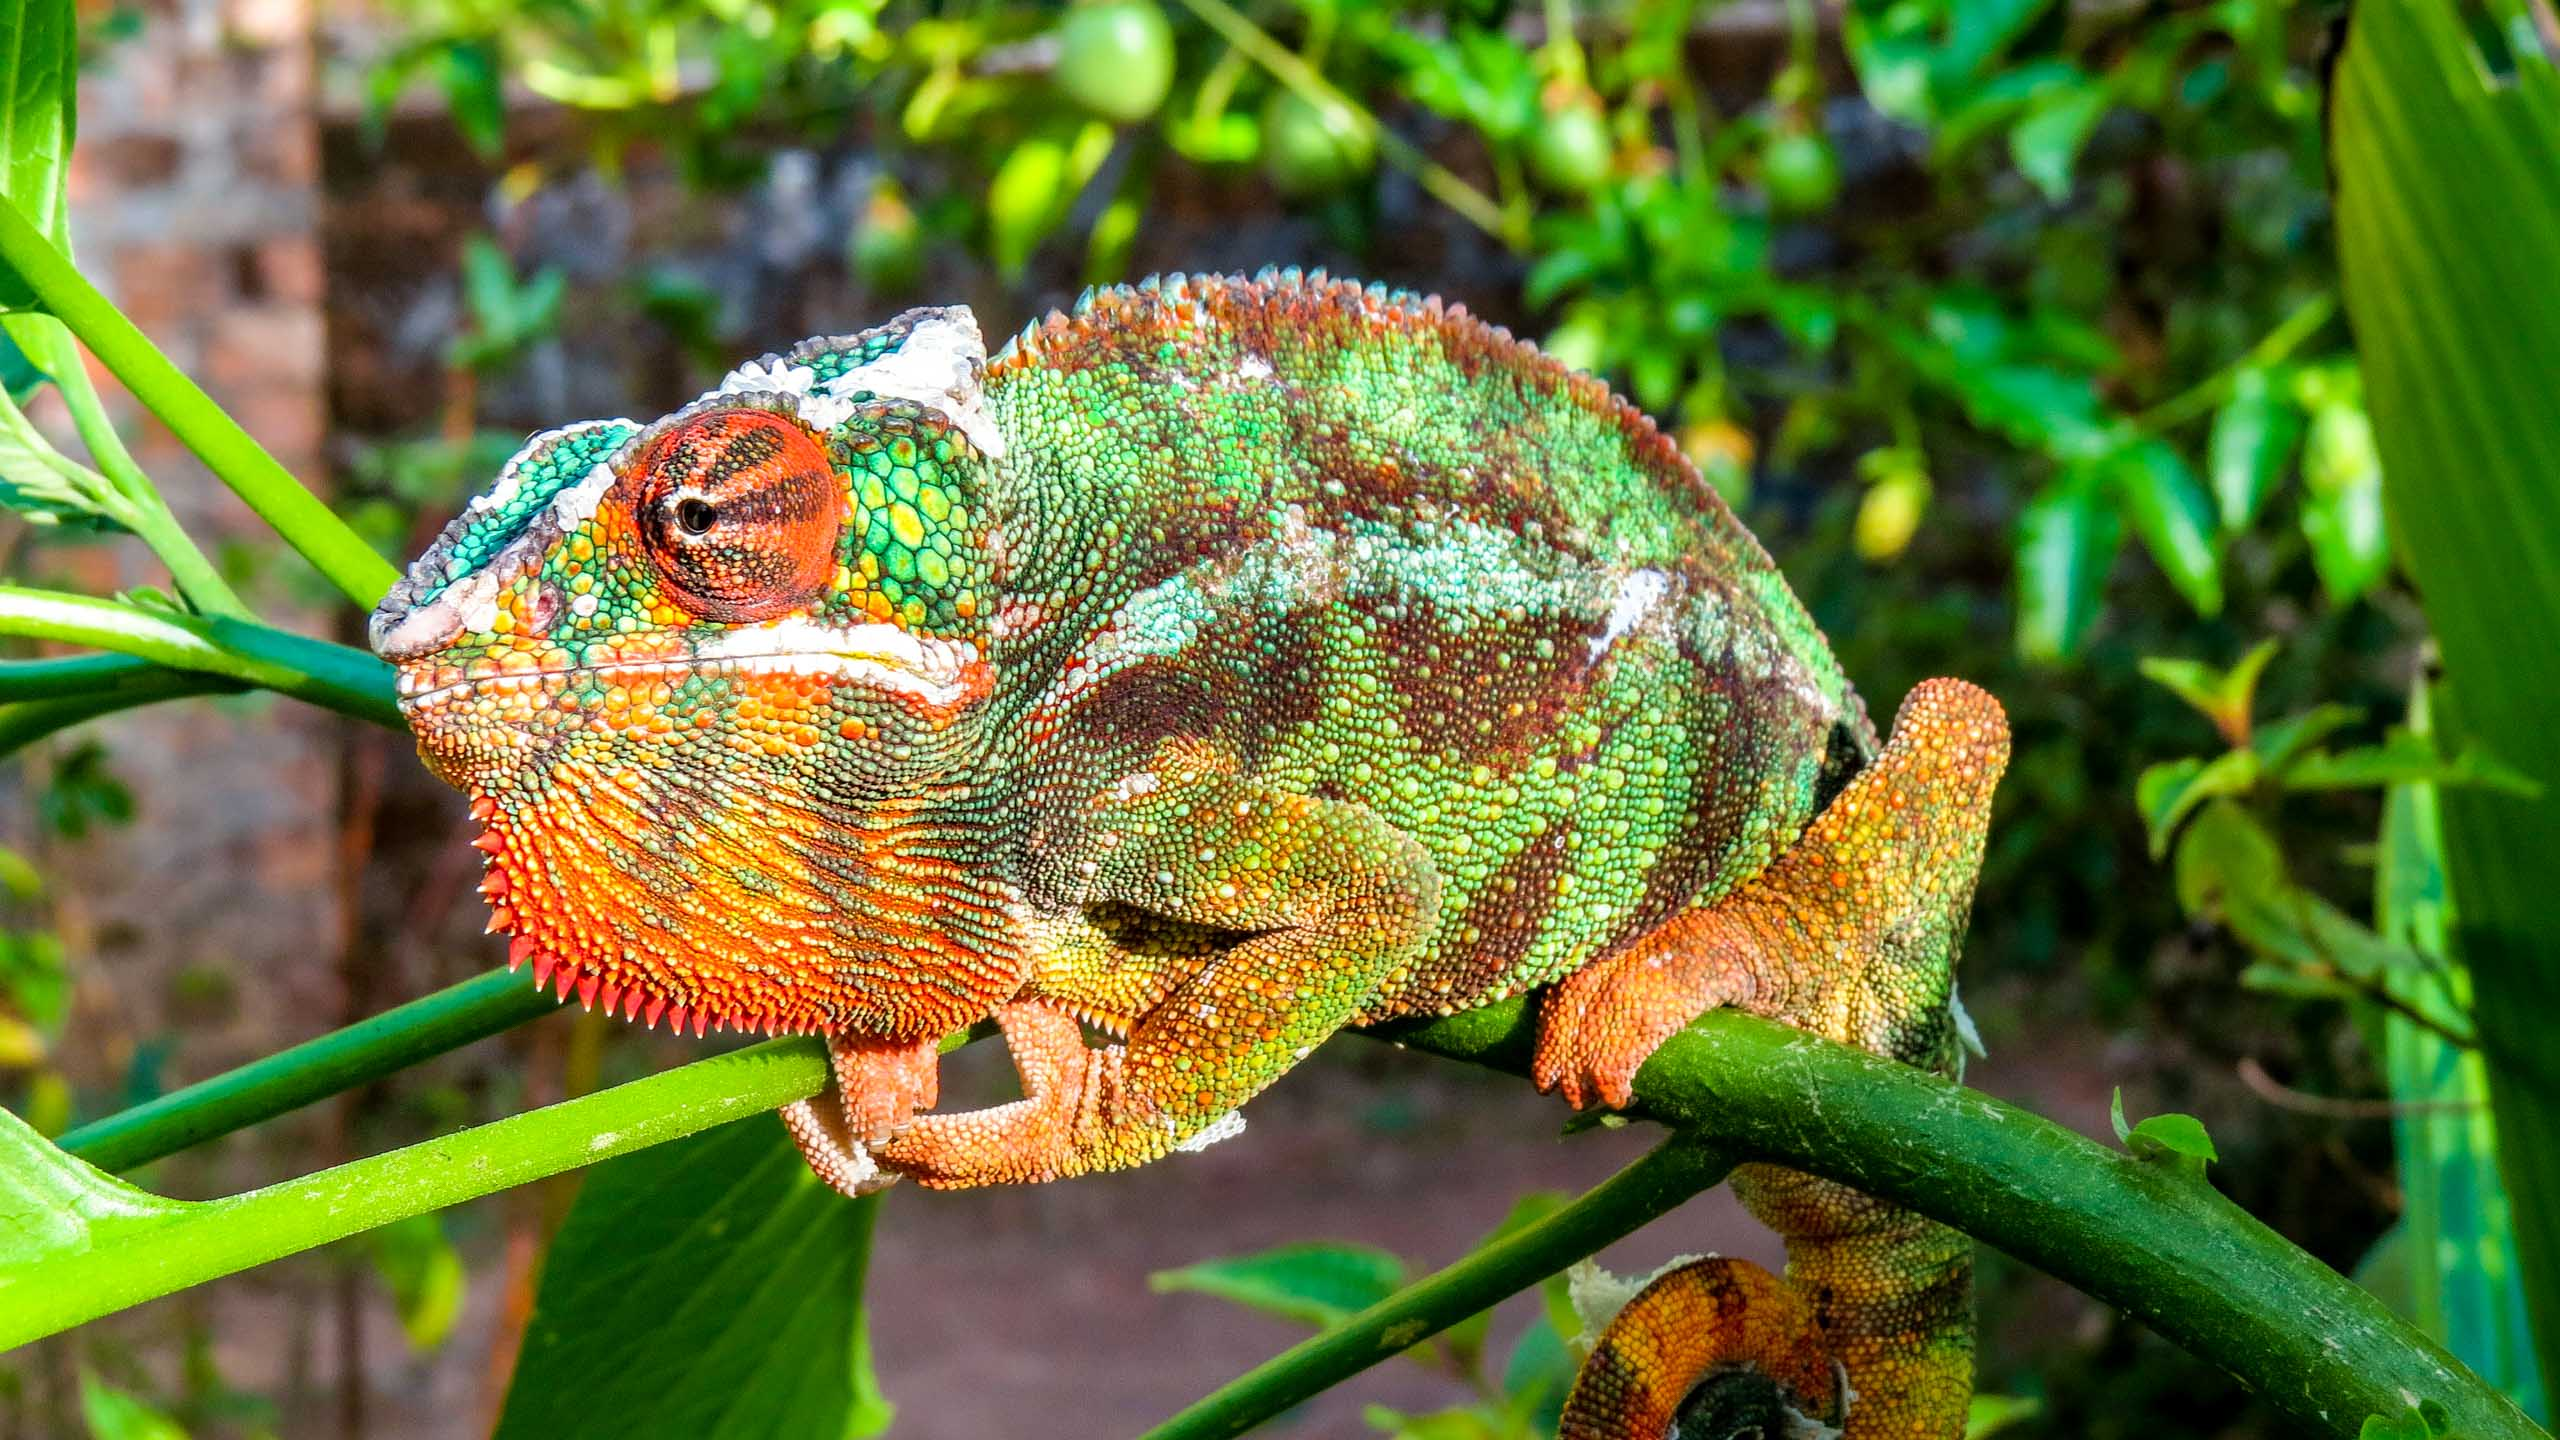 Colorful lizard sits on plant in Madagascar